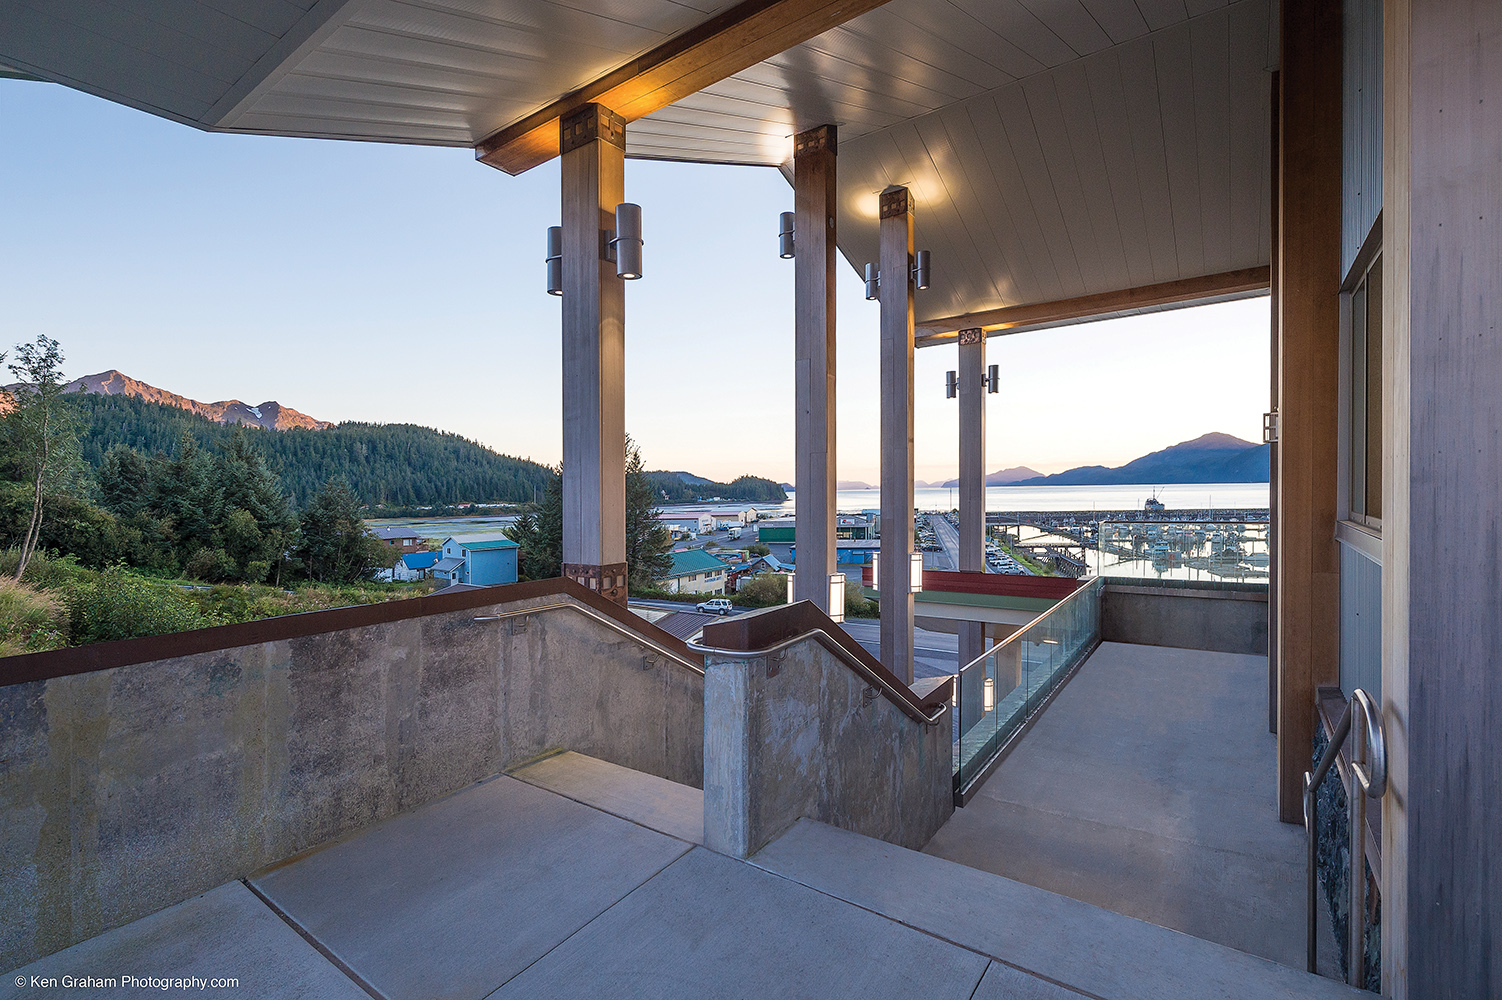 Colonnade and Scope outdoor lighting fixtures illuminate the support columns of a beautiful waterfront building.